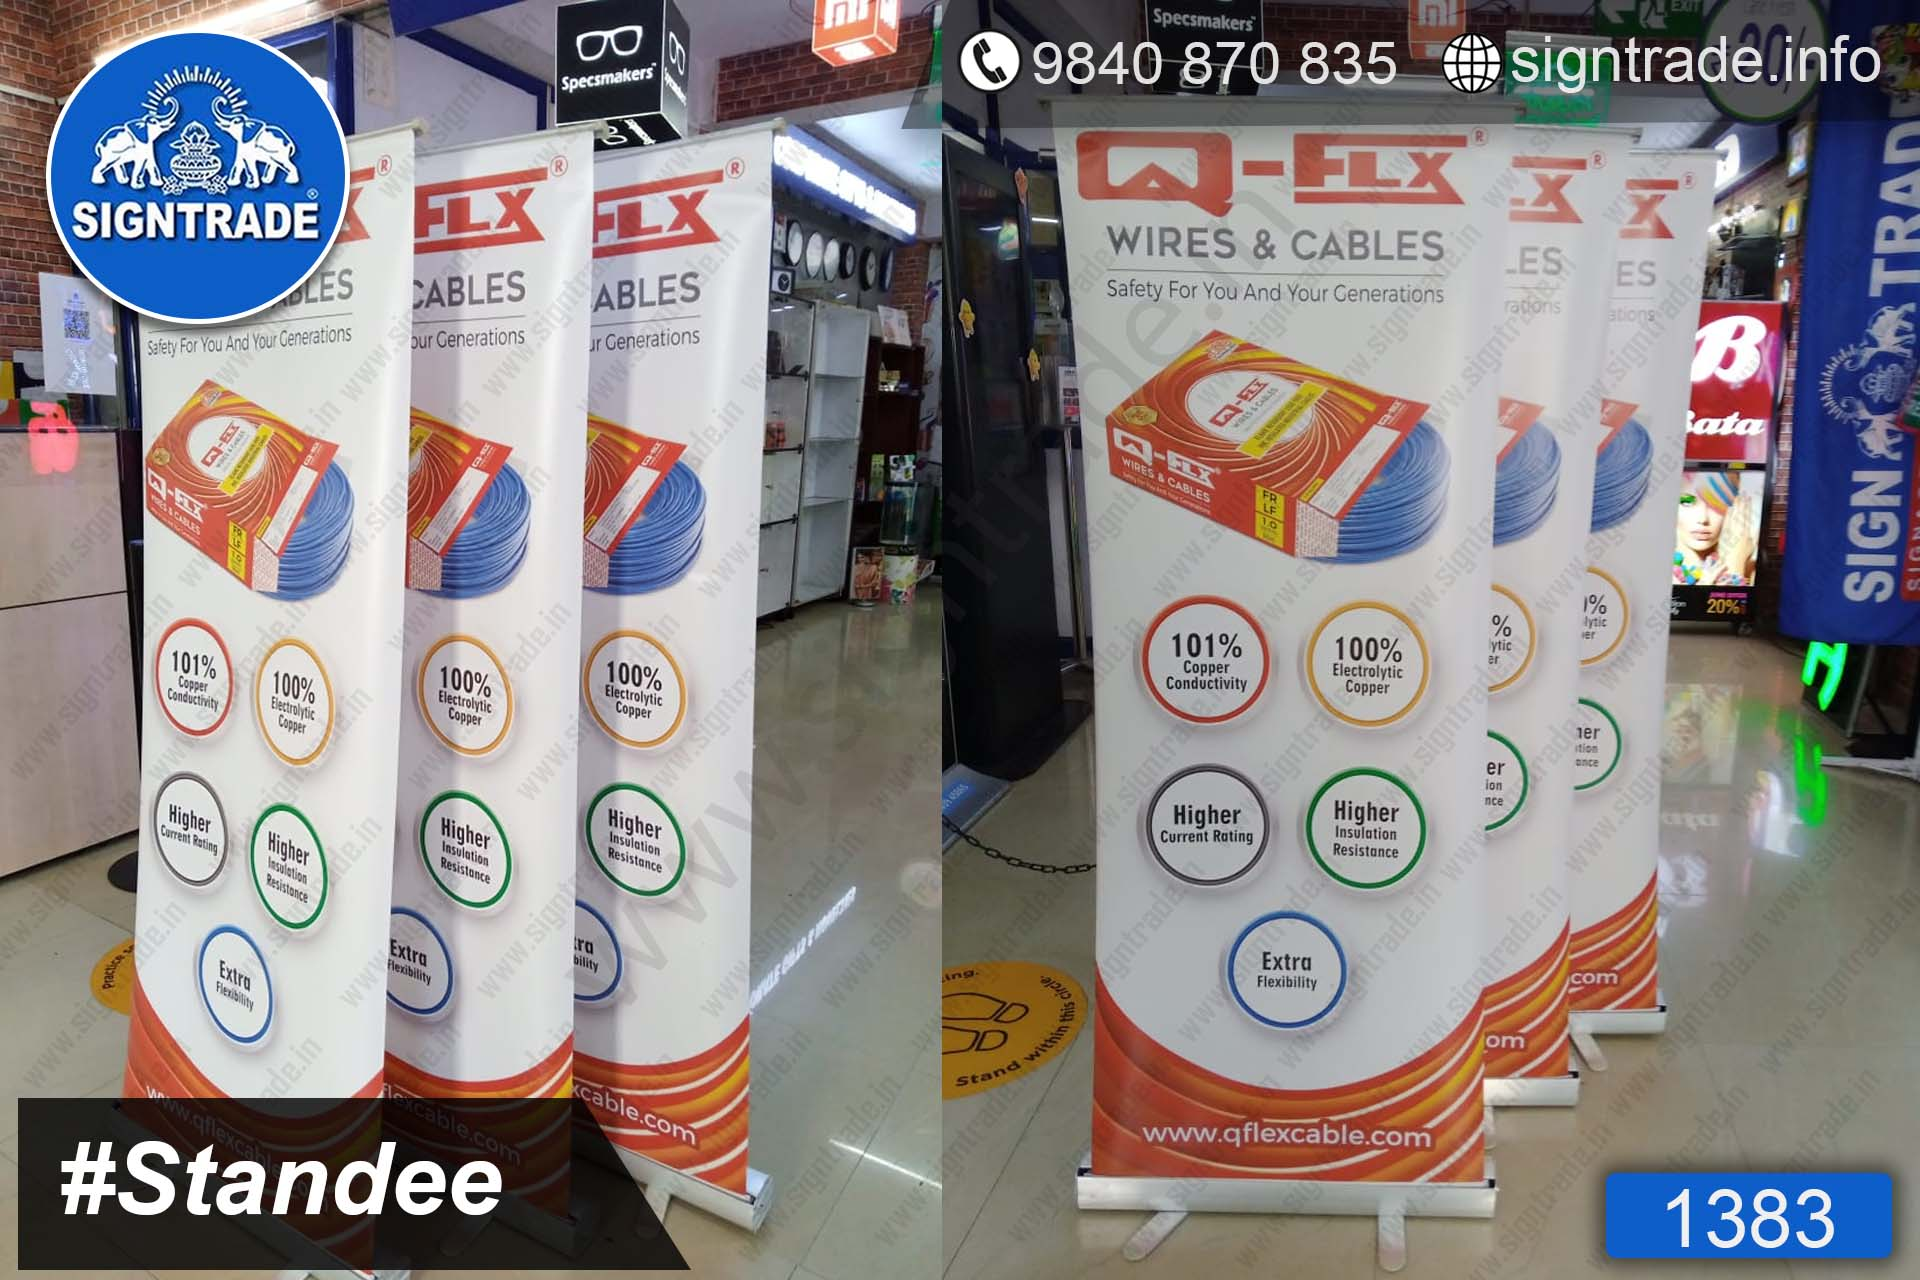 Q - Flex Wires and Cables - 1383, Retractable Banner, Roll Up Banner Stand, Banner Stand, Roll Up Banner, Standee, Promotional Standee, Promotional Roll Up Standee, Promo Standee